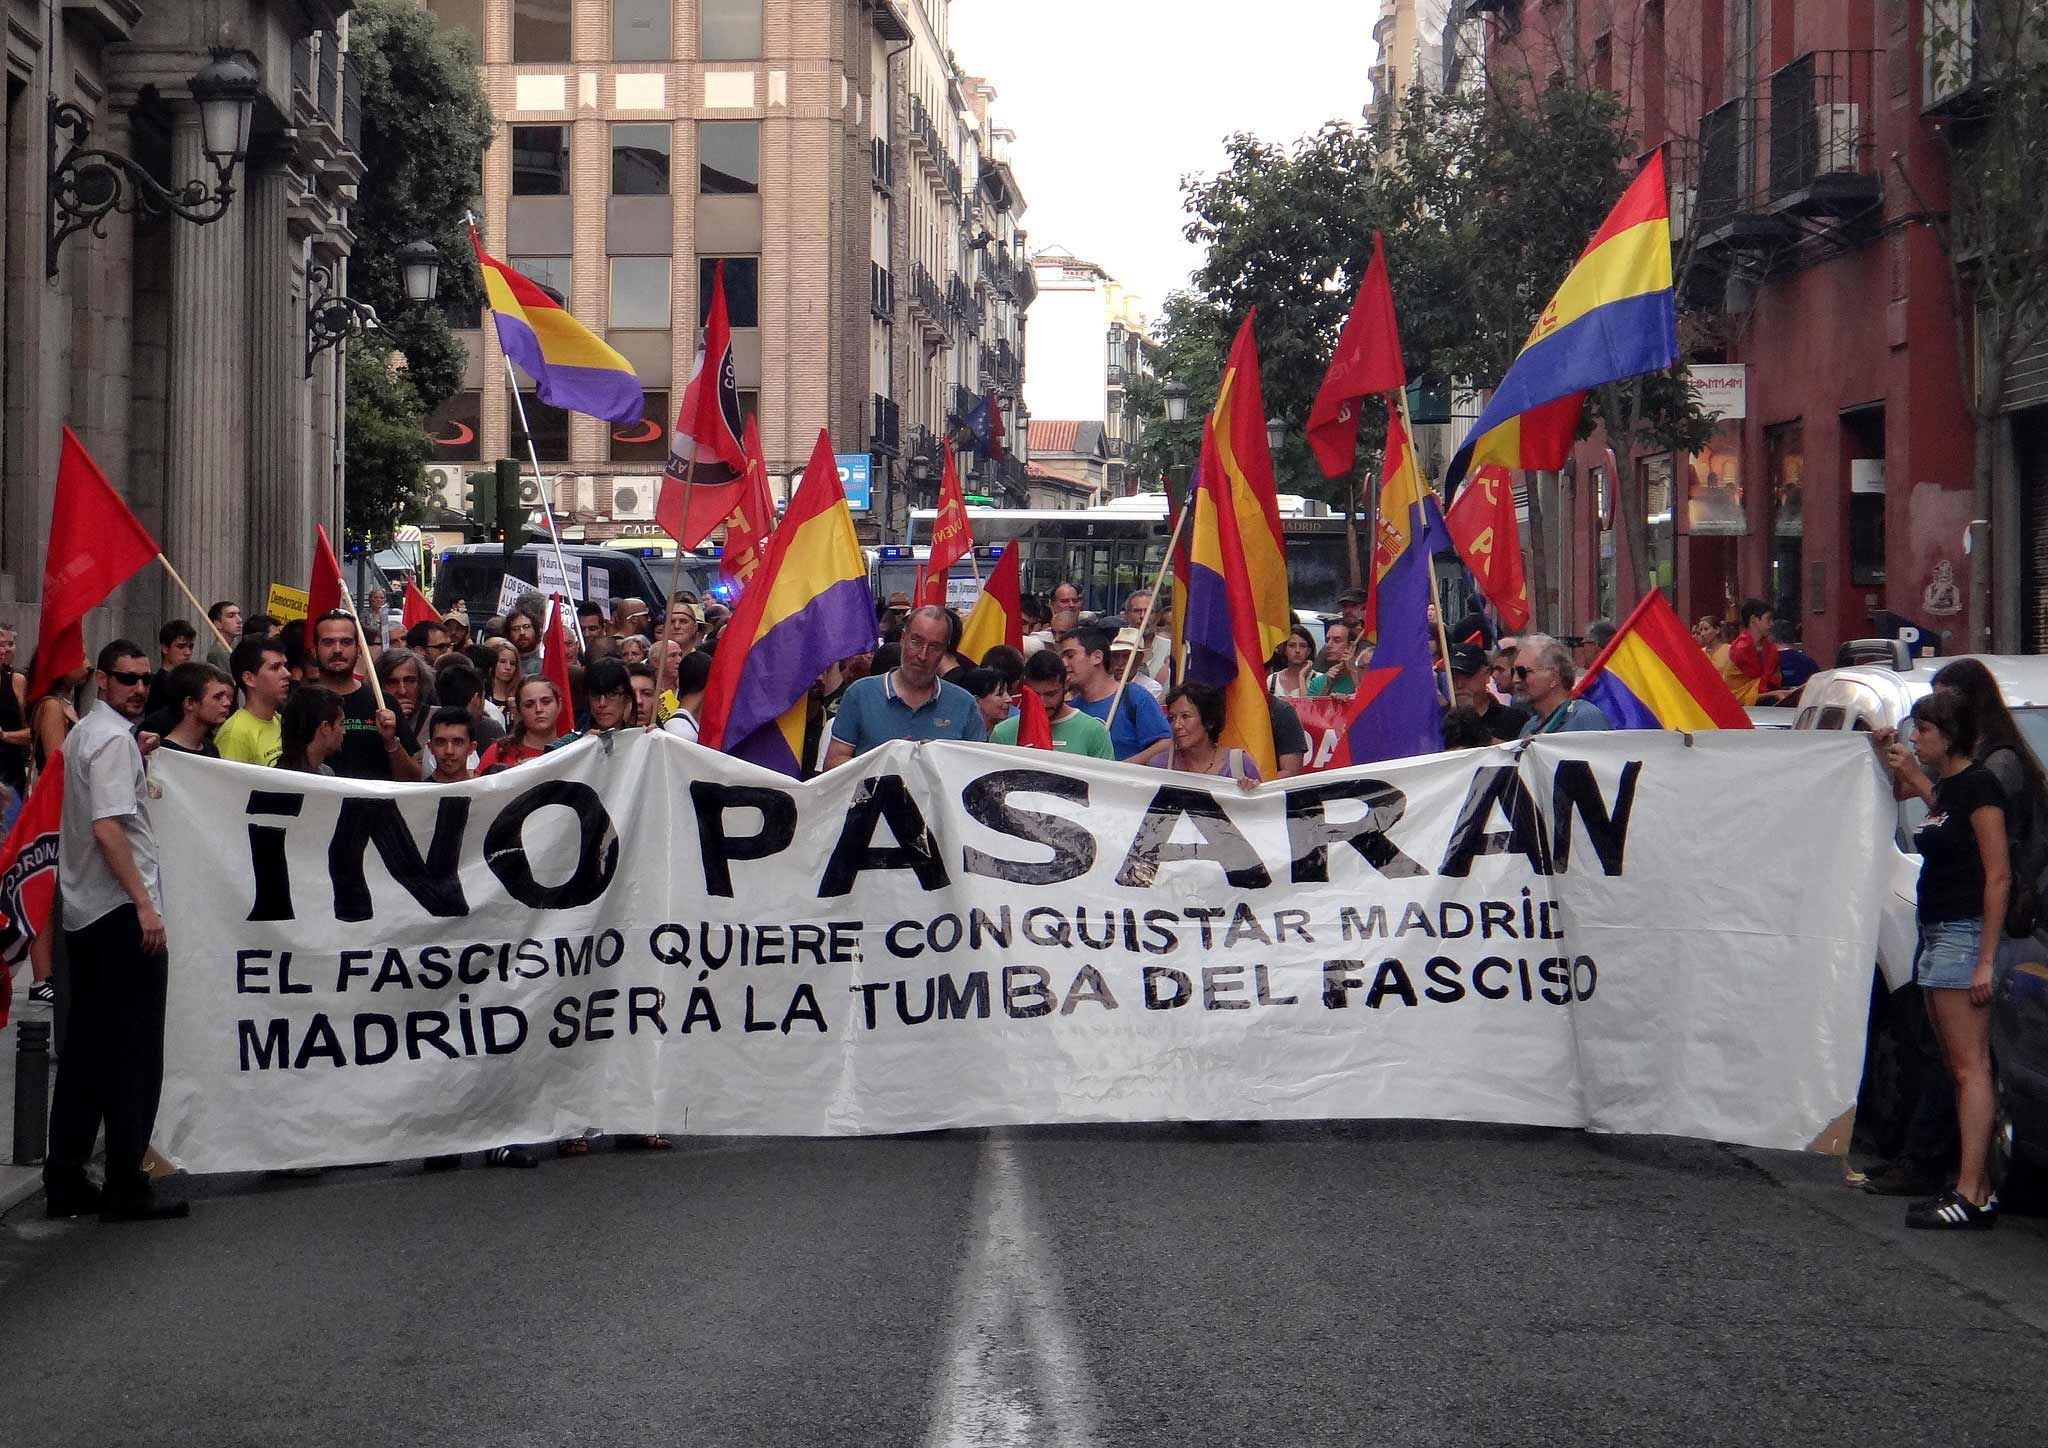 A March Commemorating The Original AntiFascist No Pasaran - Anti fascismos map us